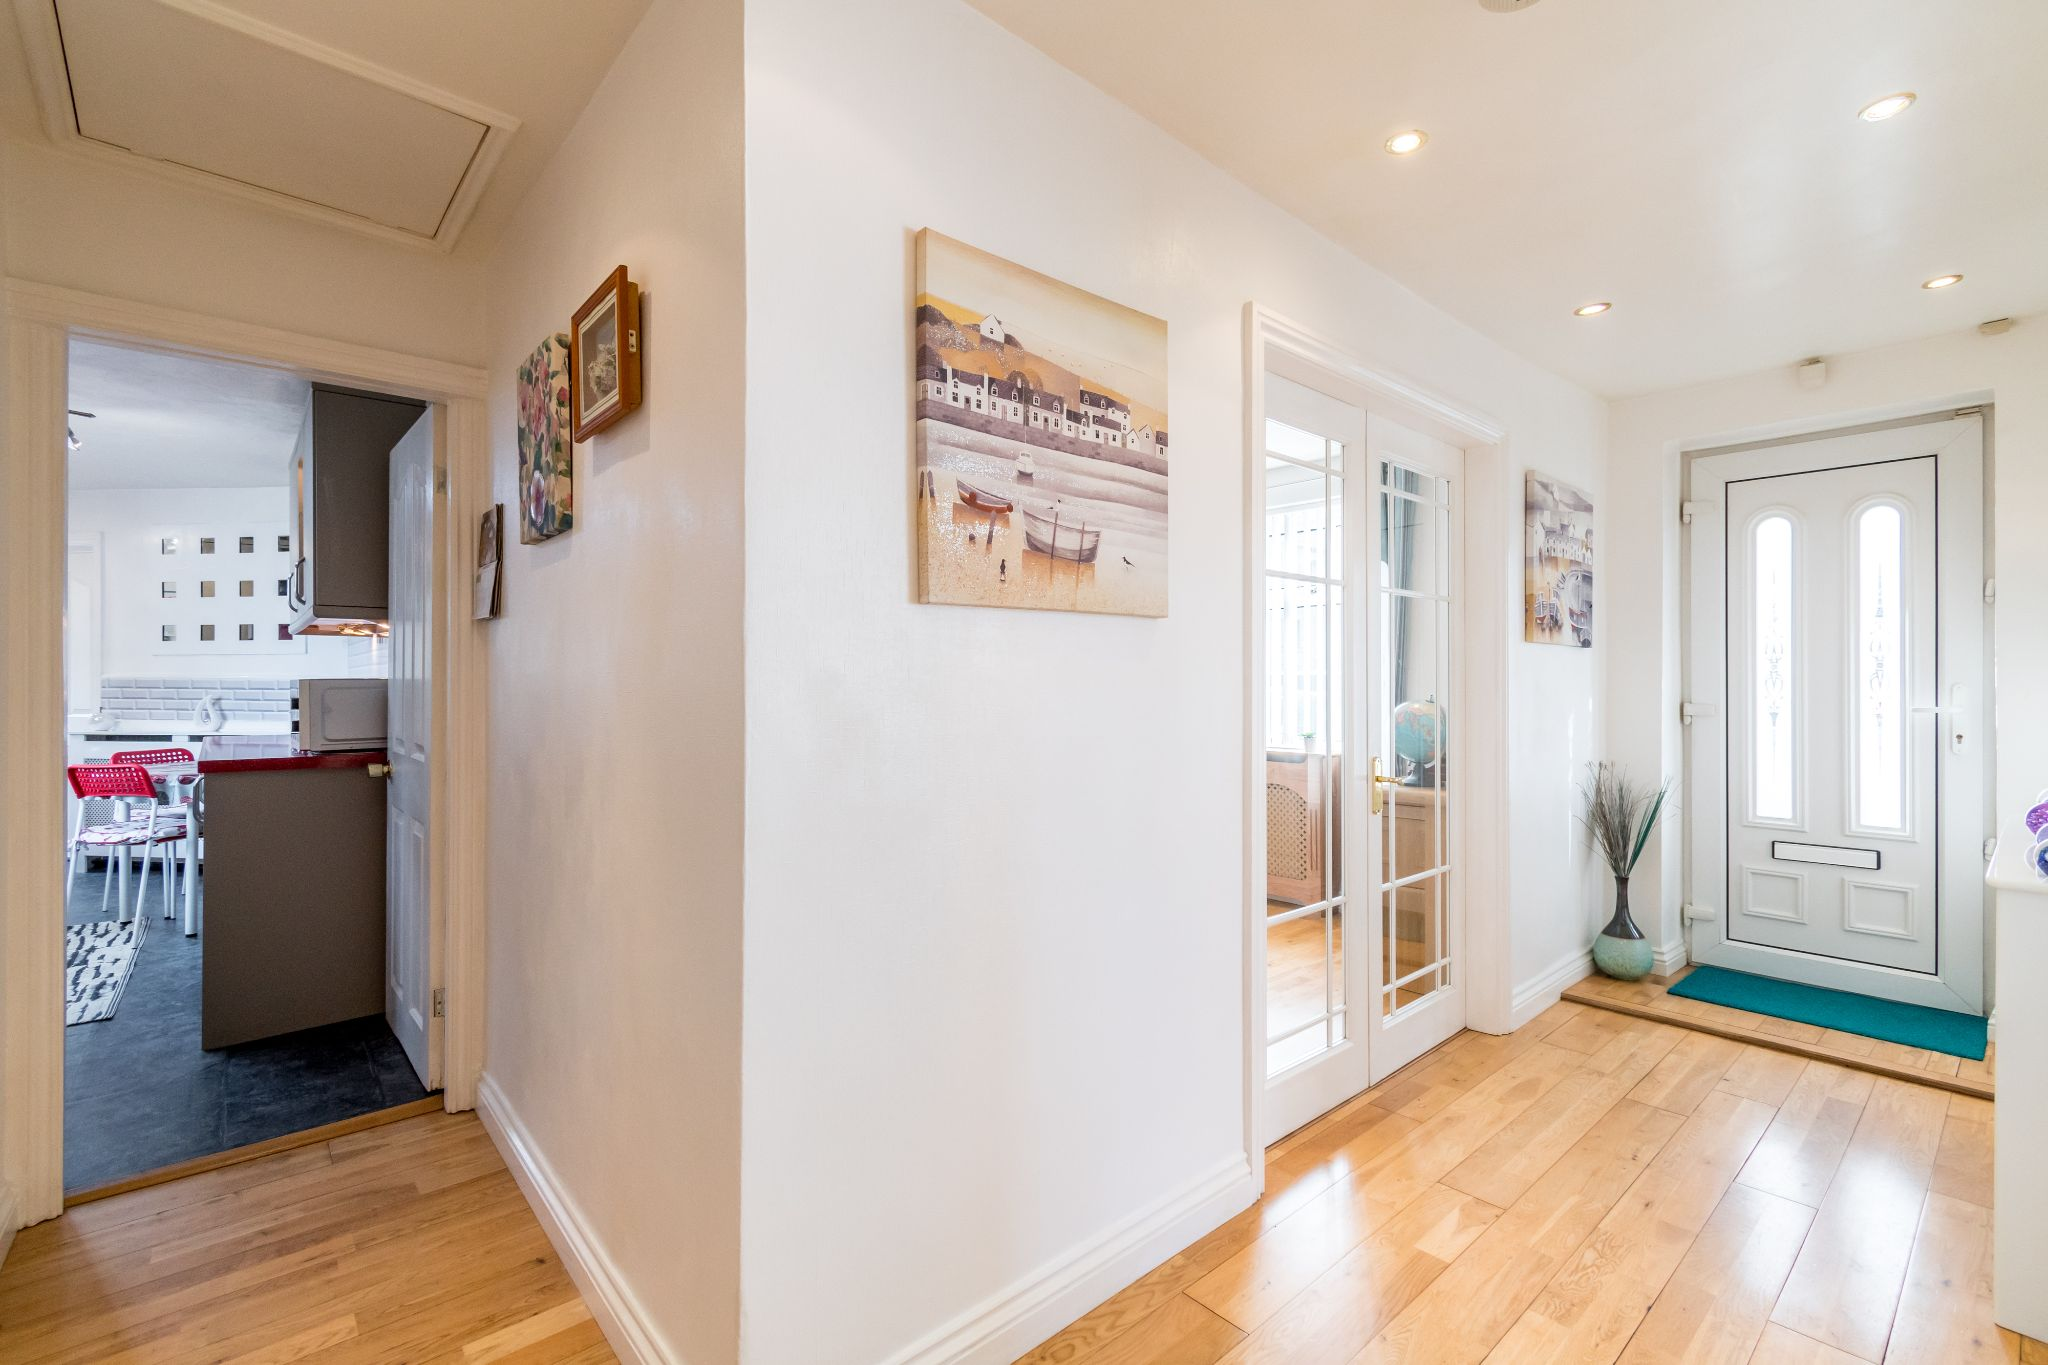 3 bedroom detached bungalow For Sale in Hove Edge - Entrance hall